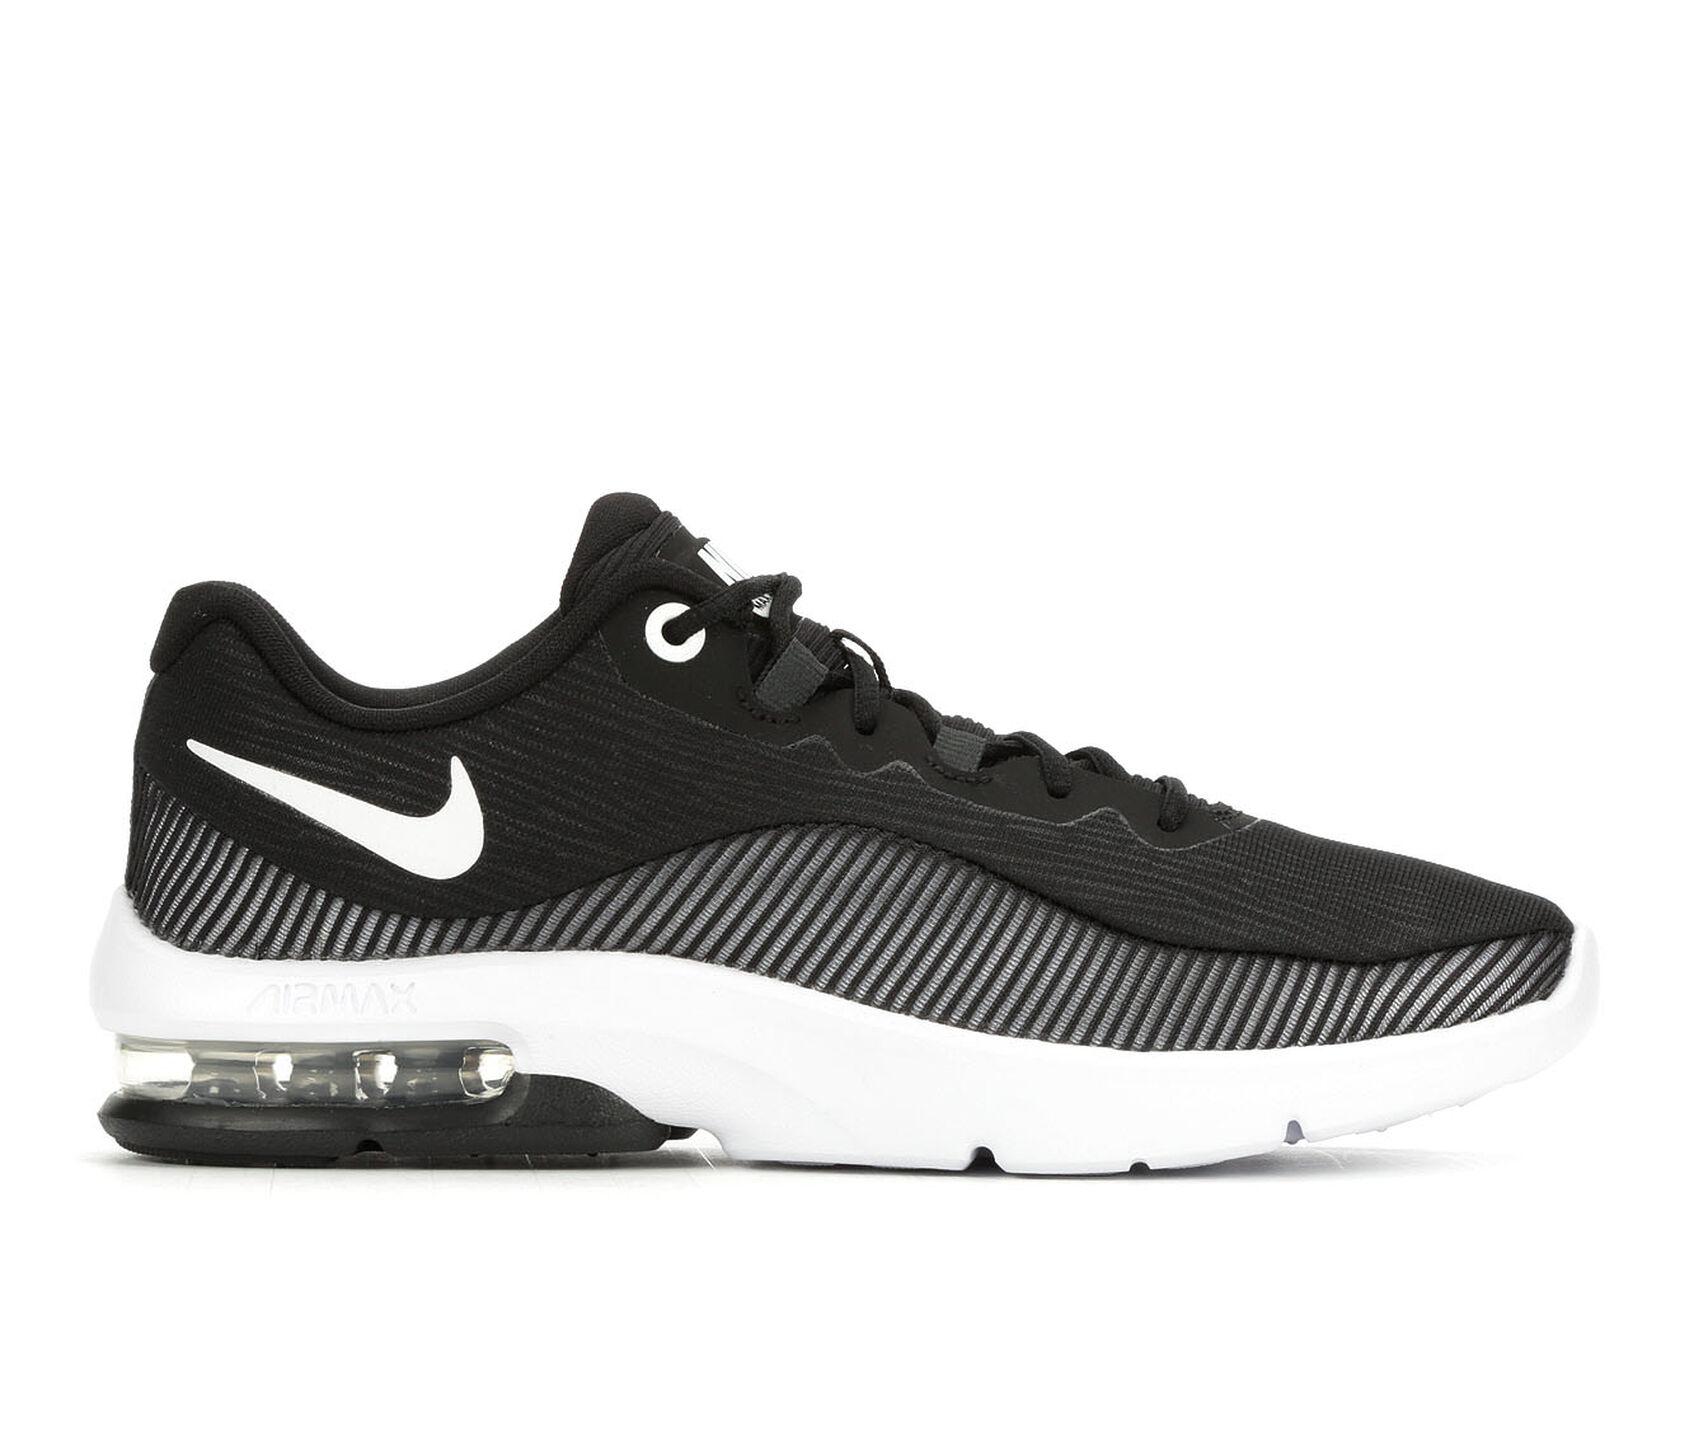 ... Nike Air Max Advantage 2 Running Shoes. Carousel Controls bd5485778d